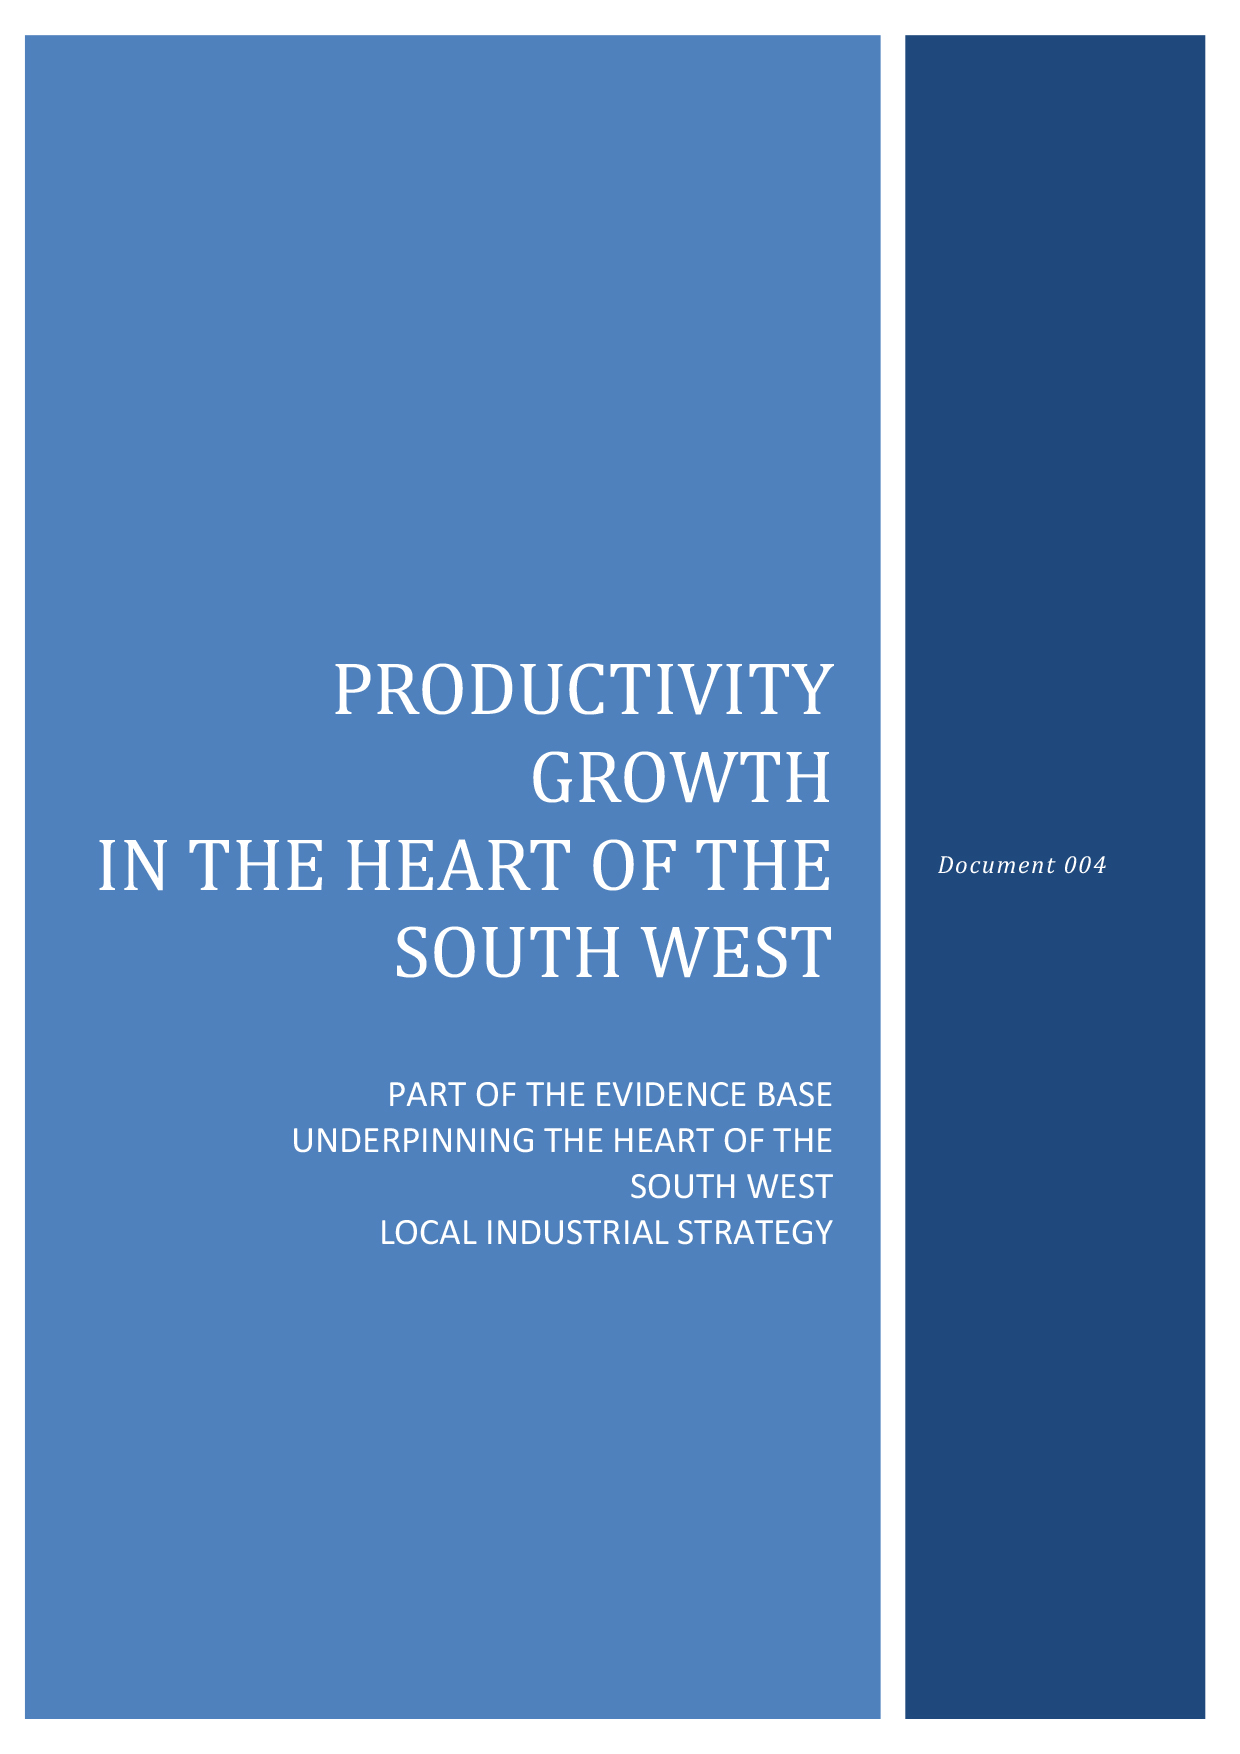 Microsoft Word - 004 Productivity Growth in the Heart of the Sou